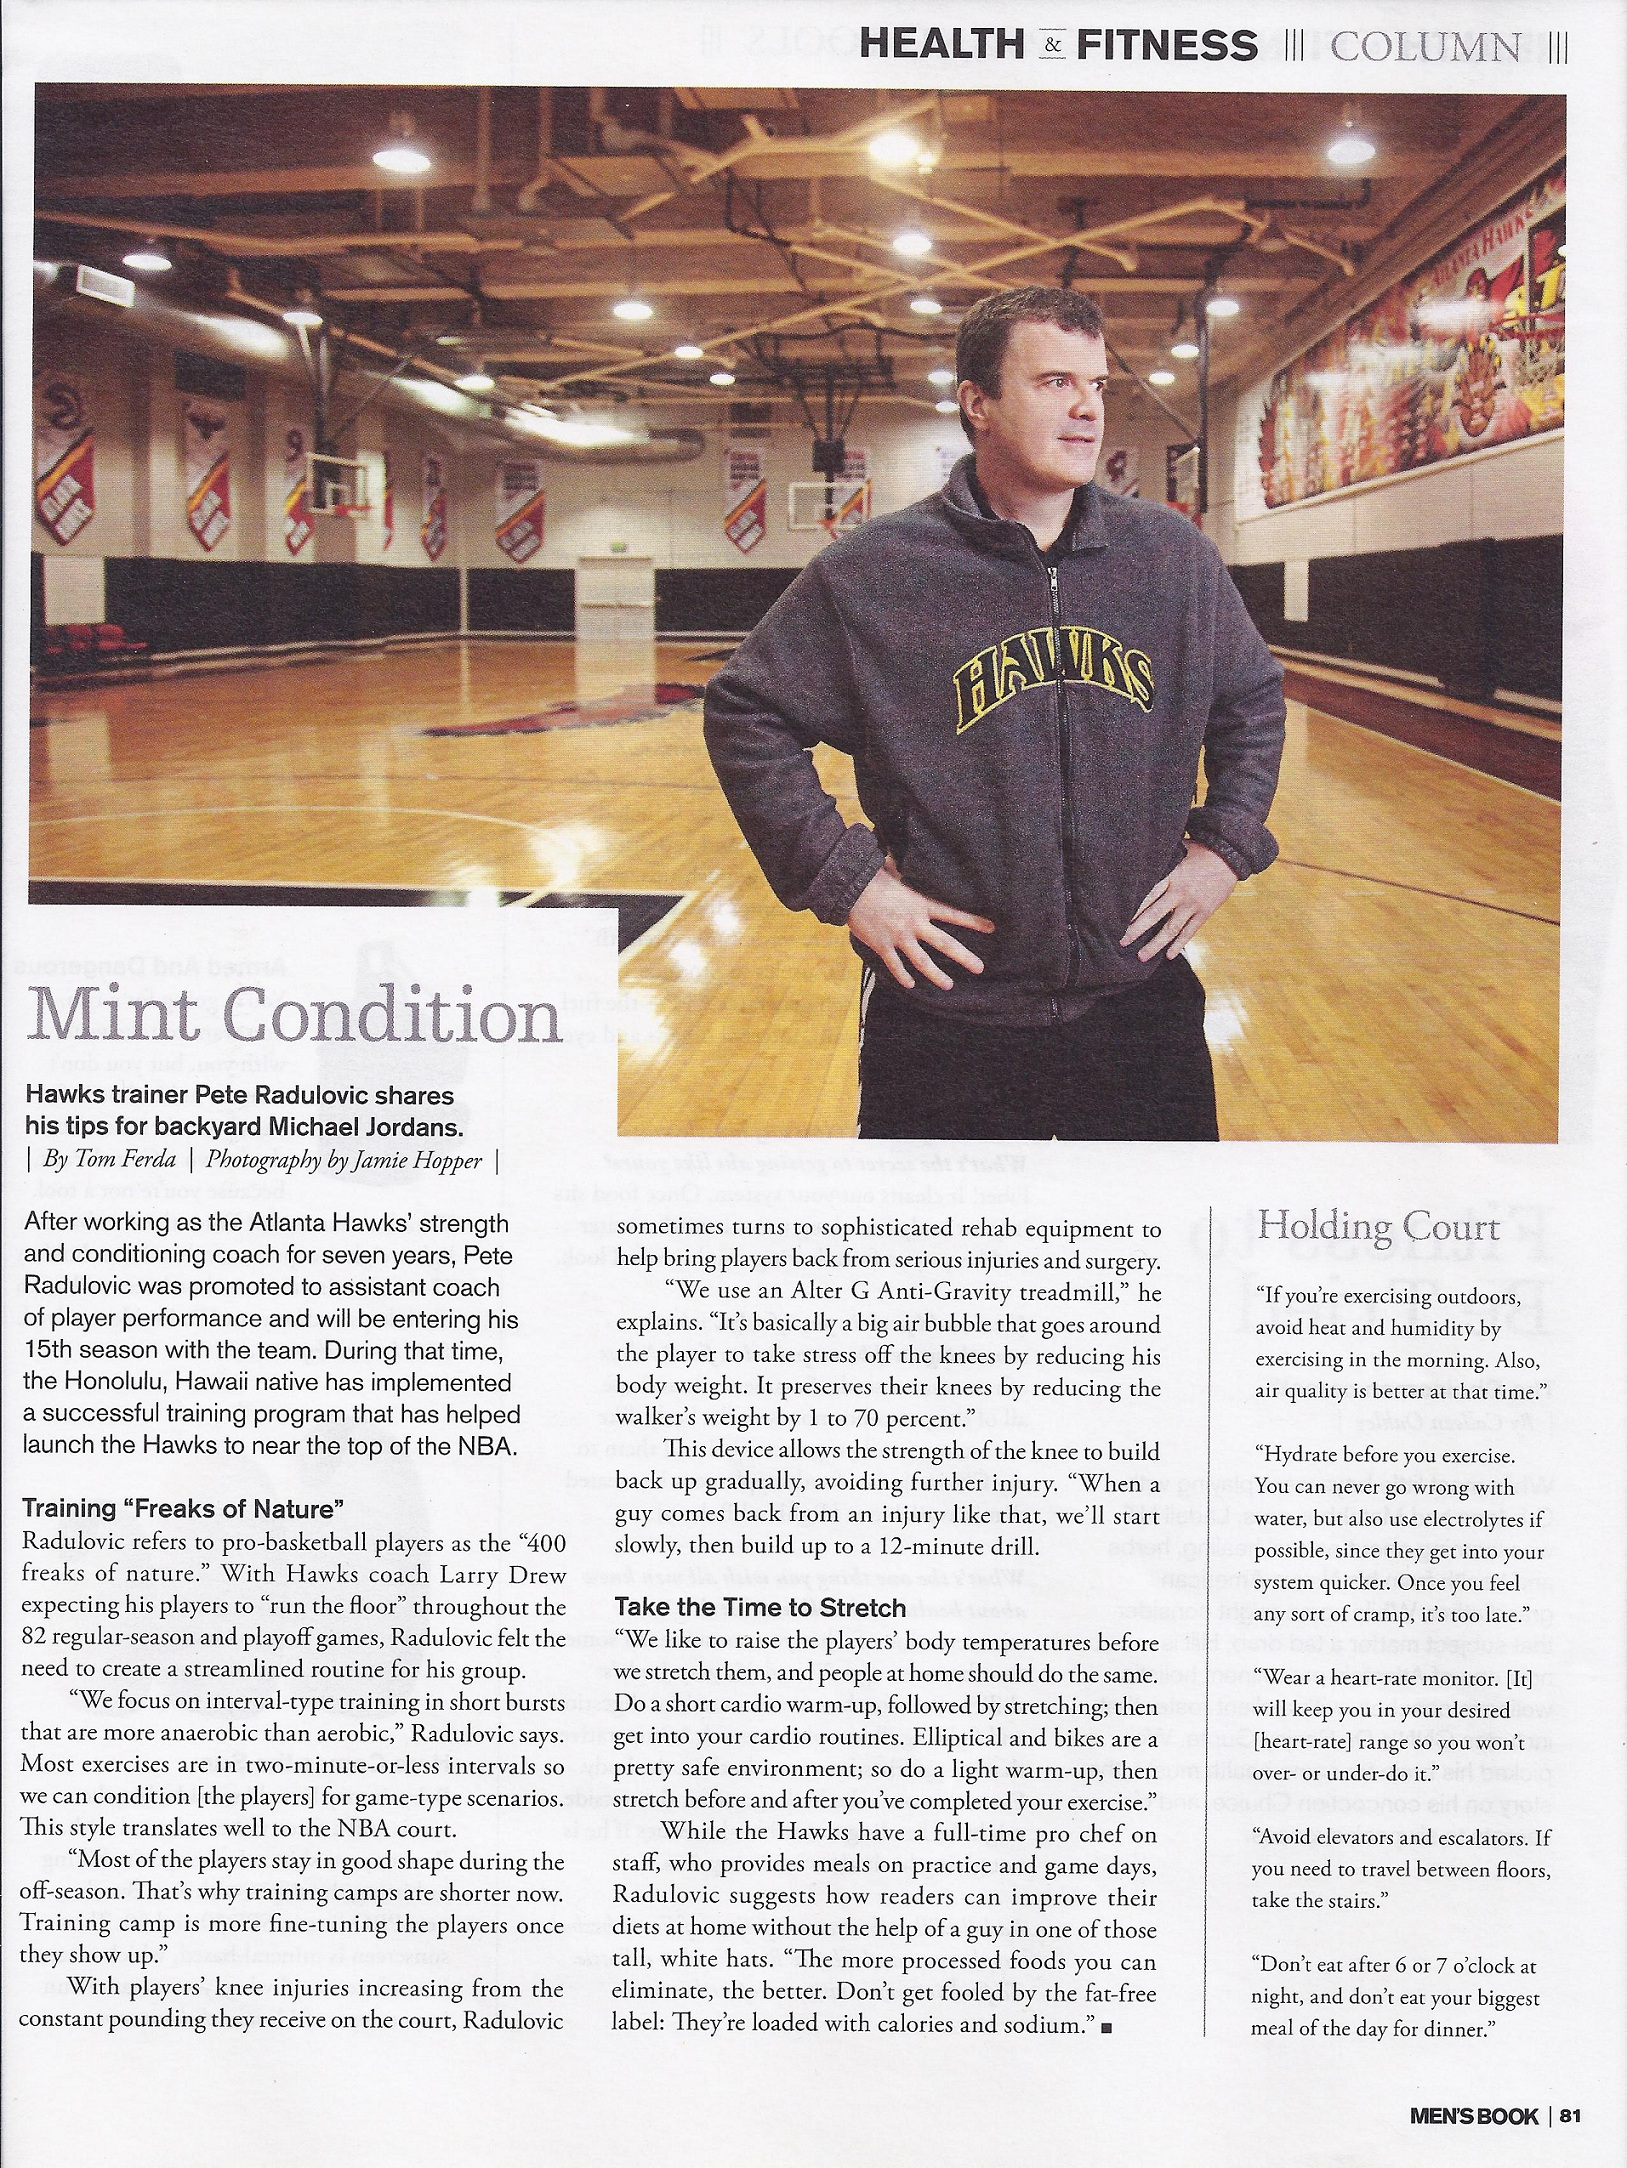 Hawks trainer article